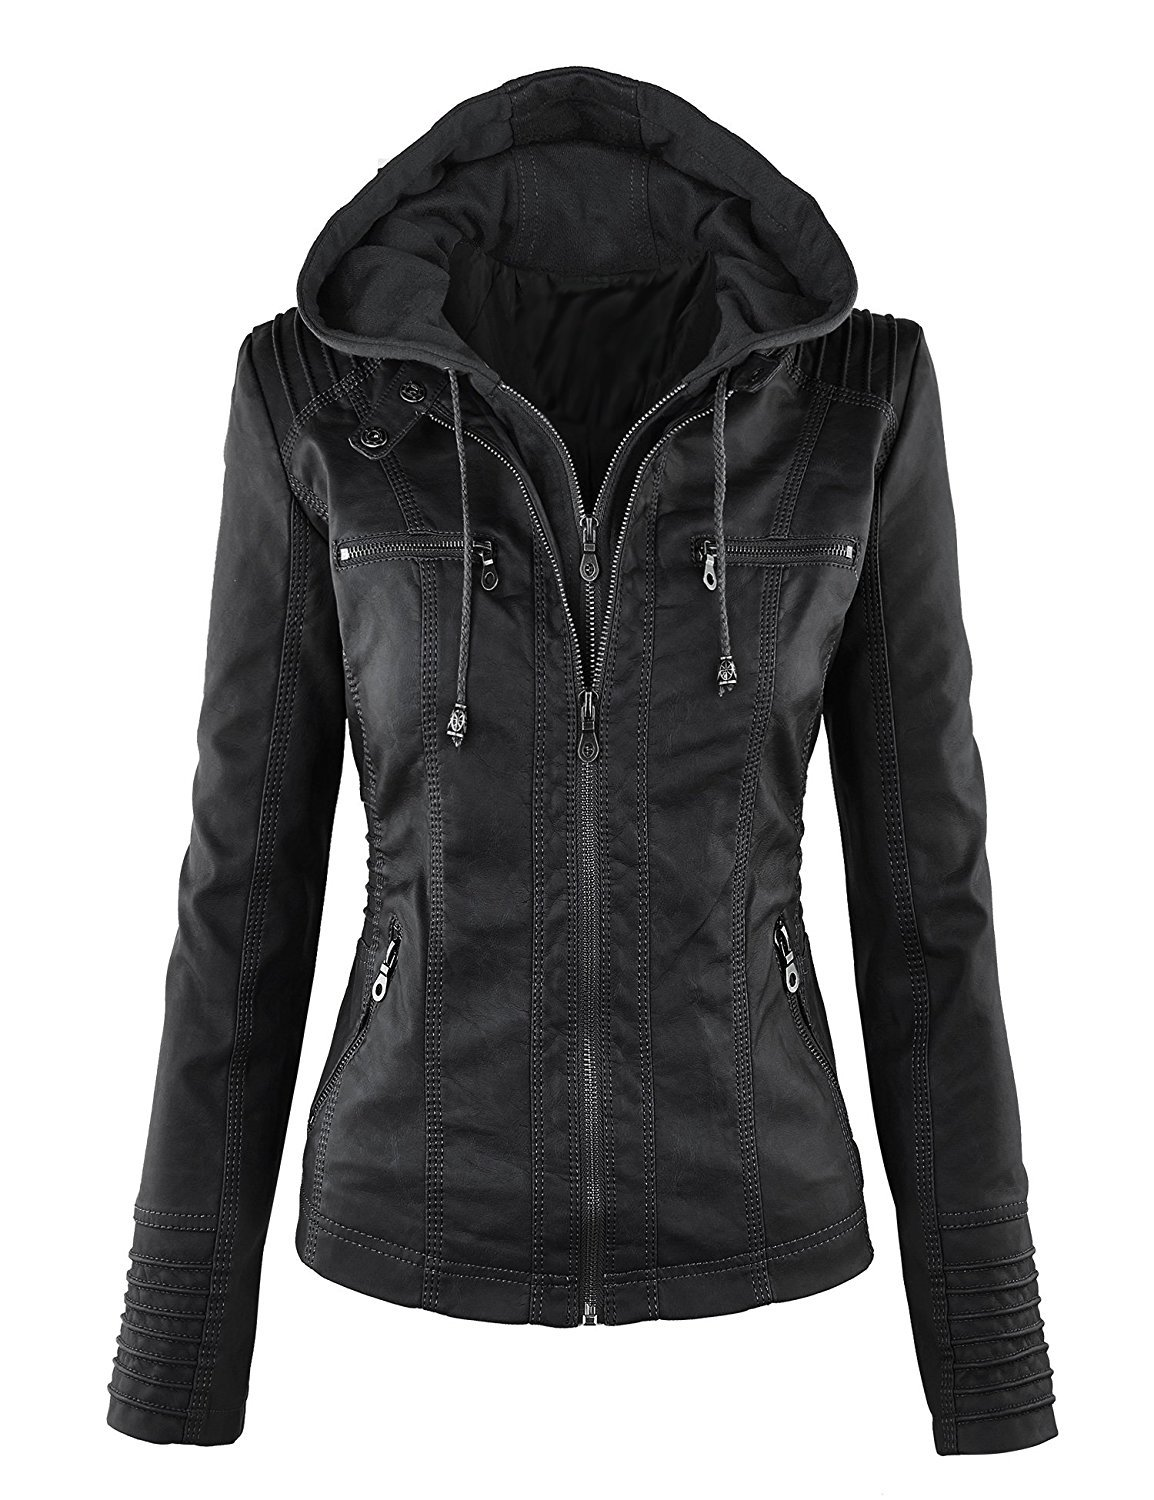 Showlovein Women Hooded Faux Leather Jacket Hat Detachable Motorcycle Jacket (Small, Black)